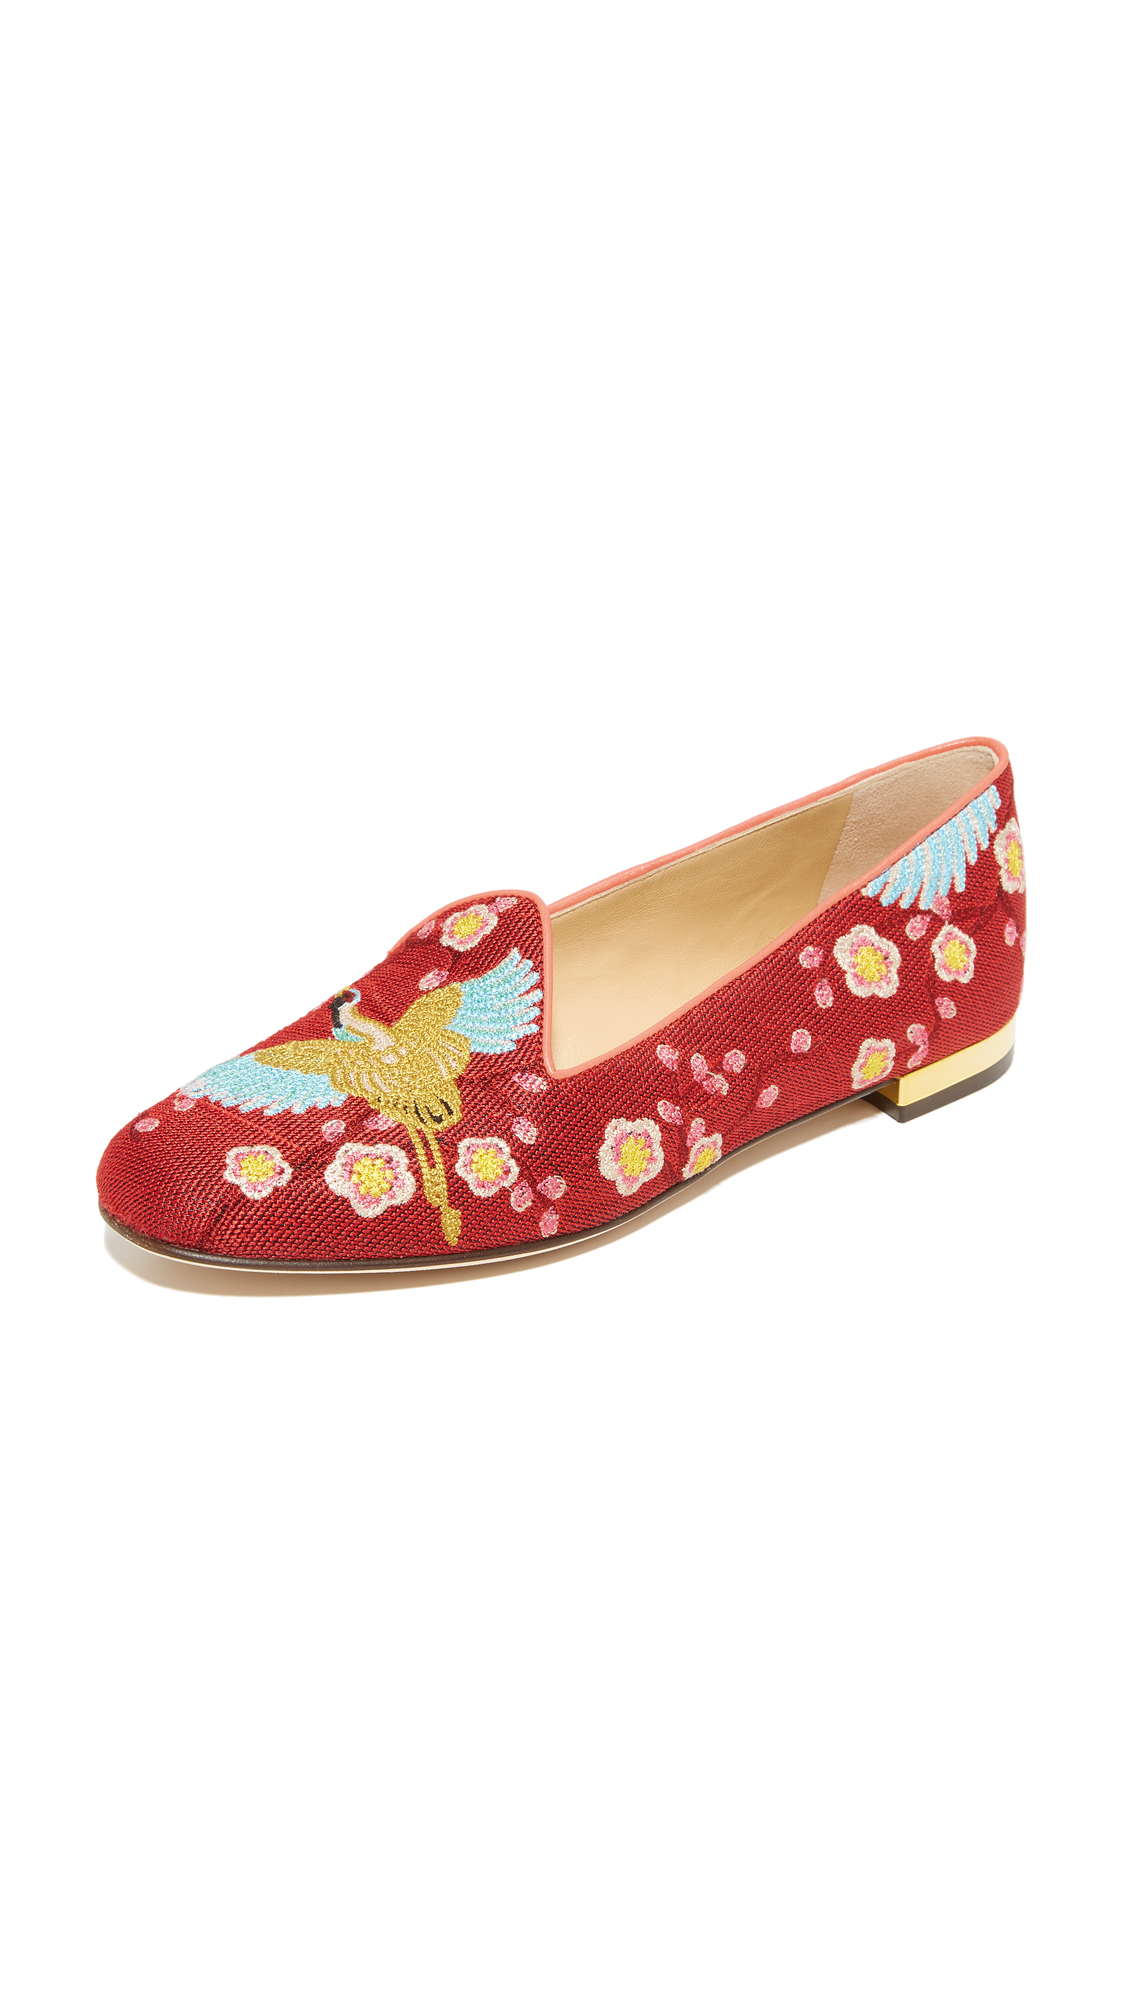 Charlotte Olympia Cherry Blossom Slippers